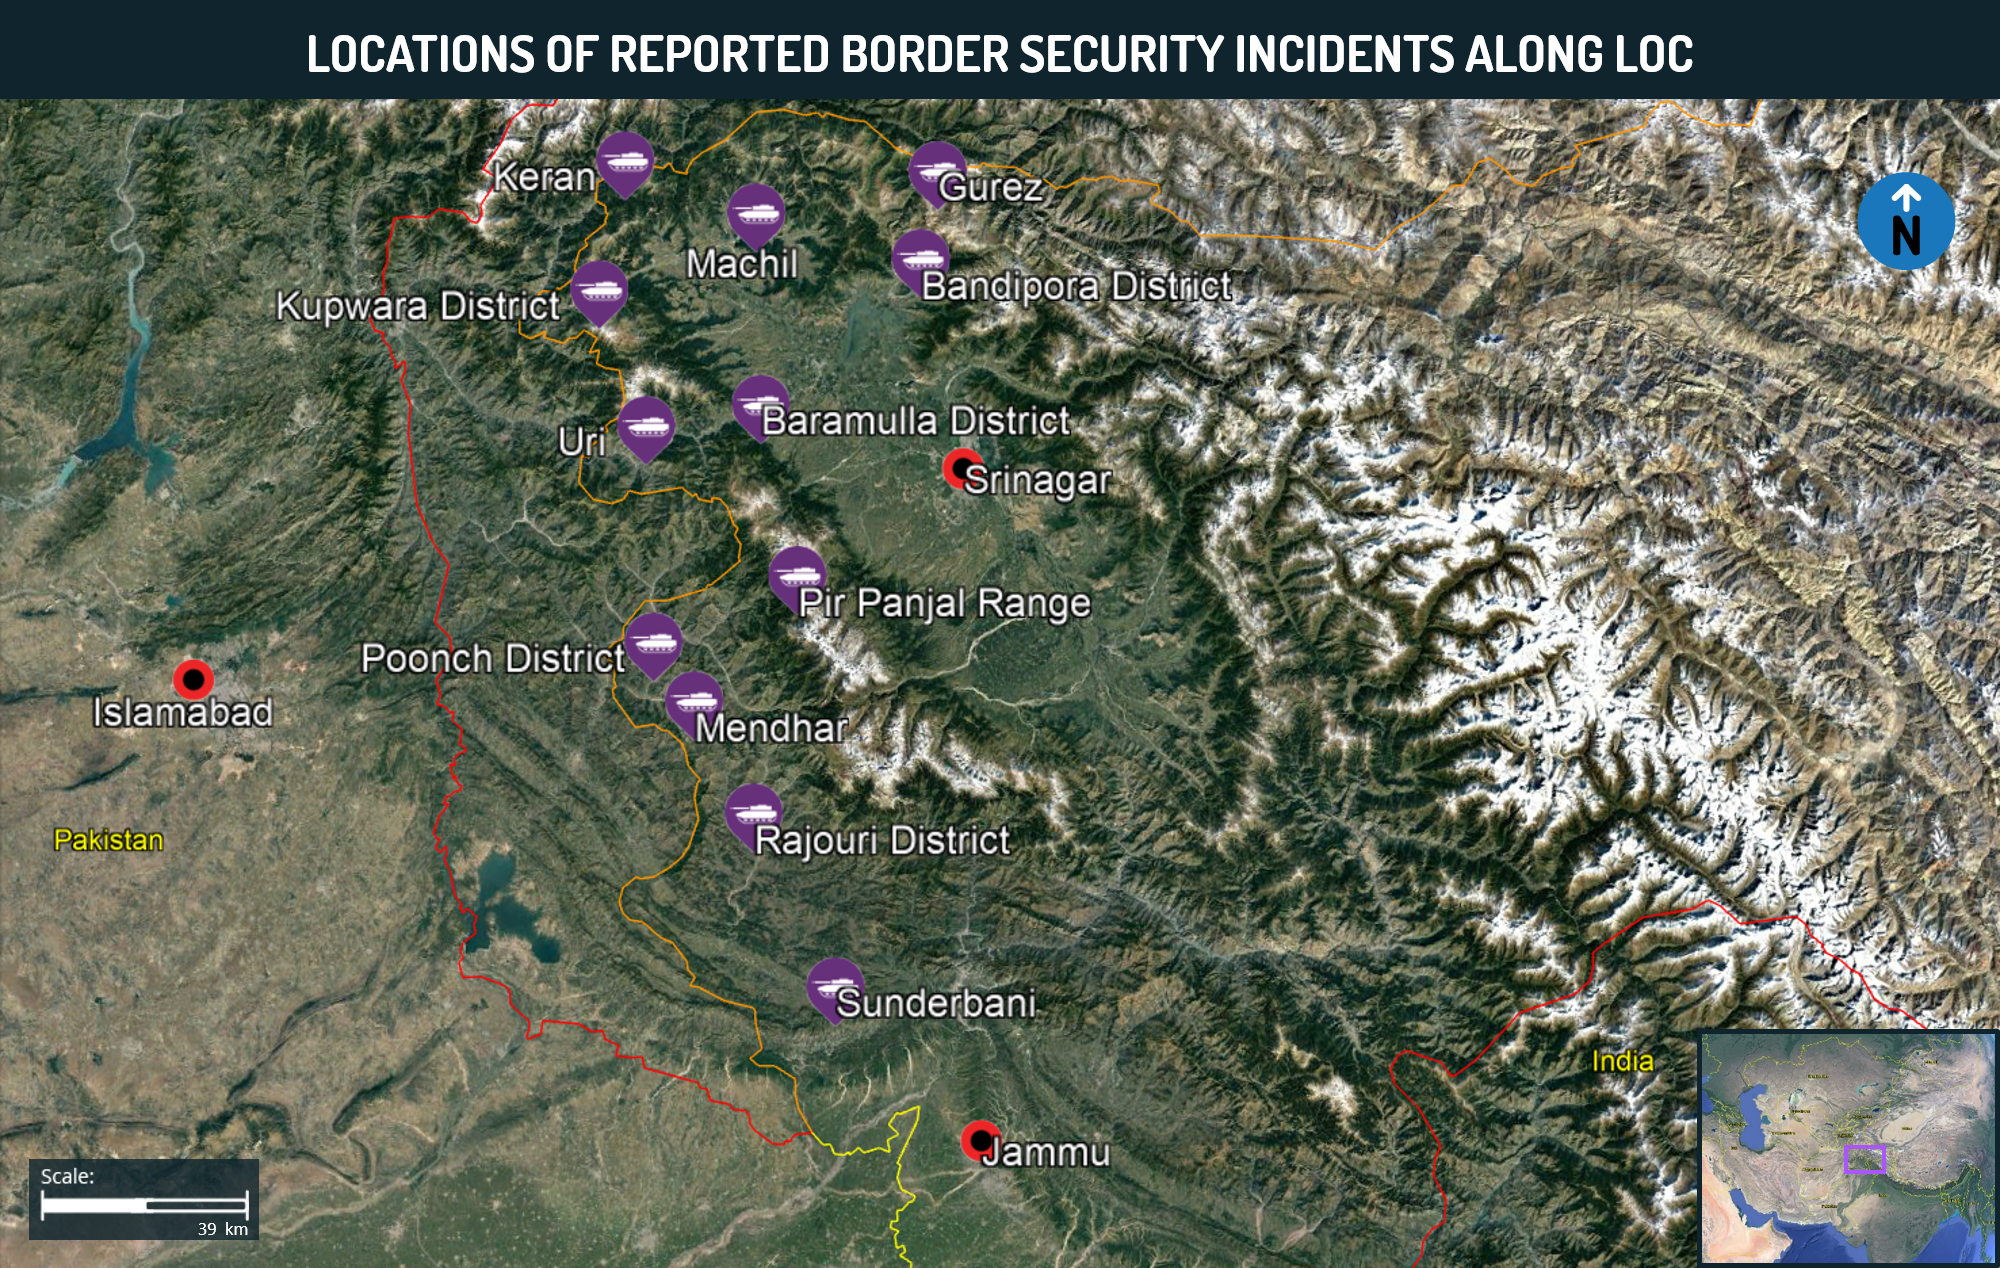 Locations of Reported Border Security Incidents Along LOC